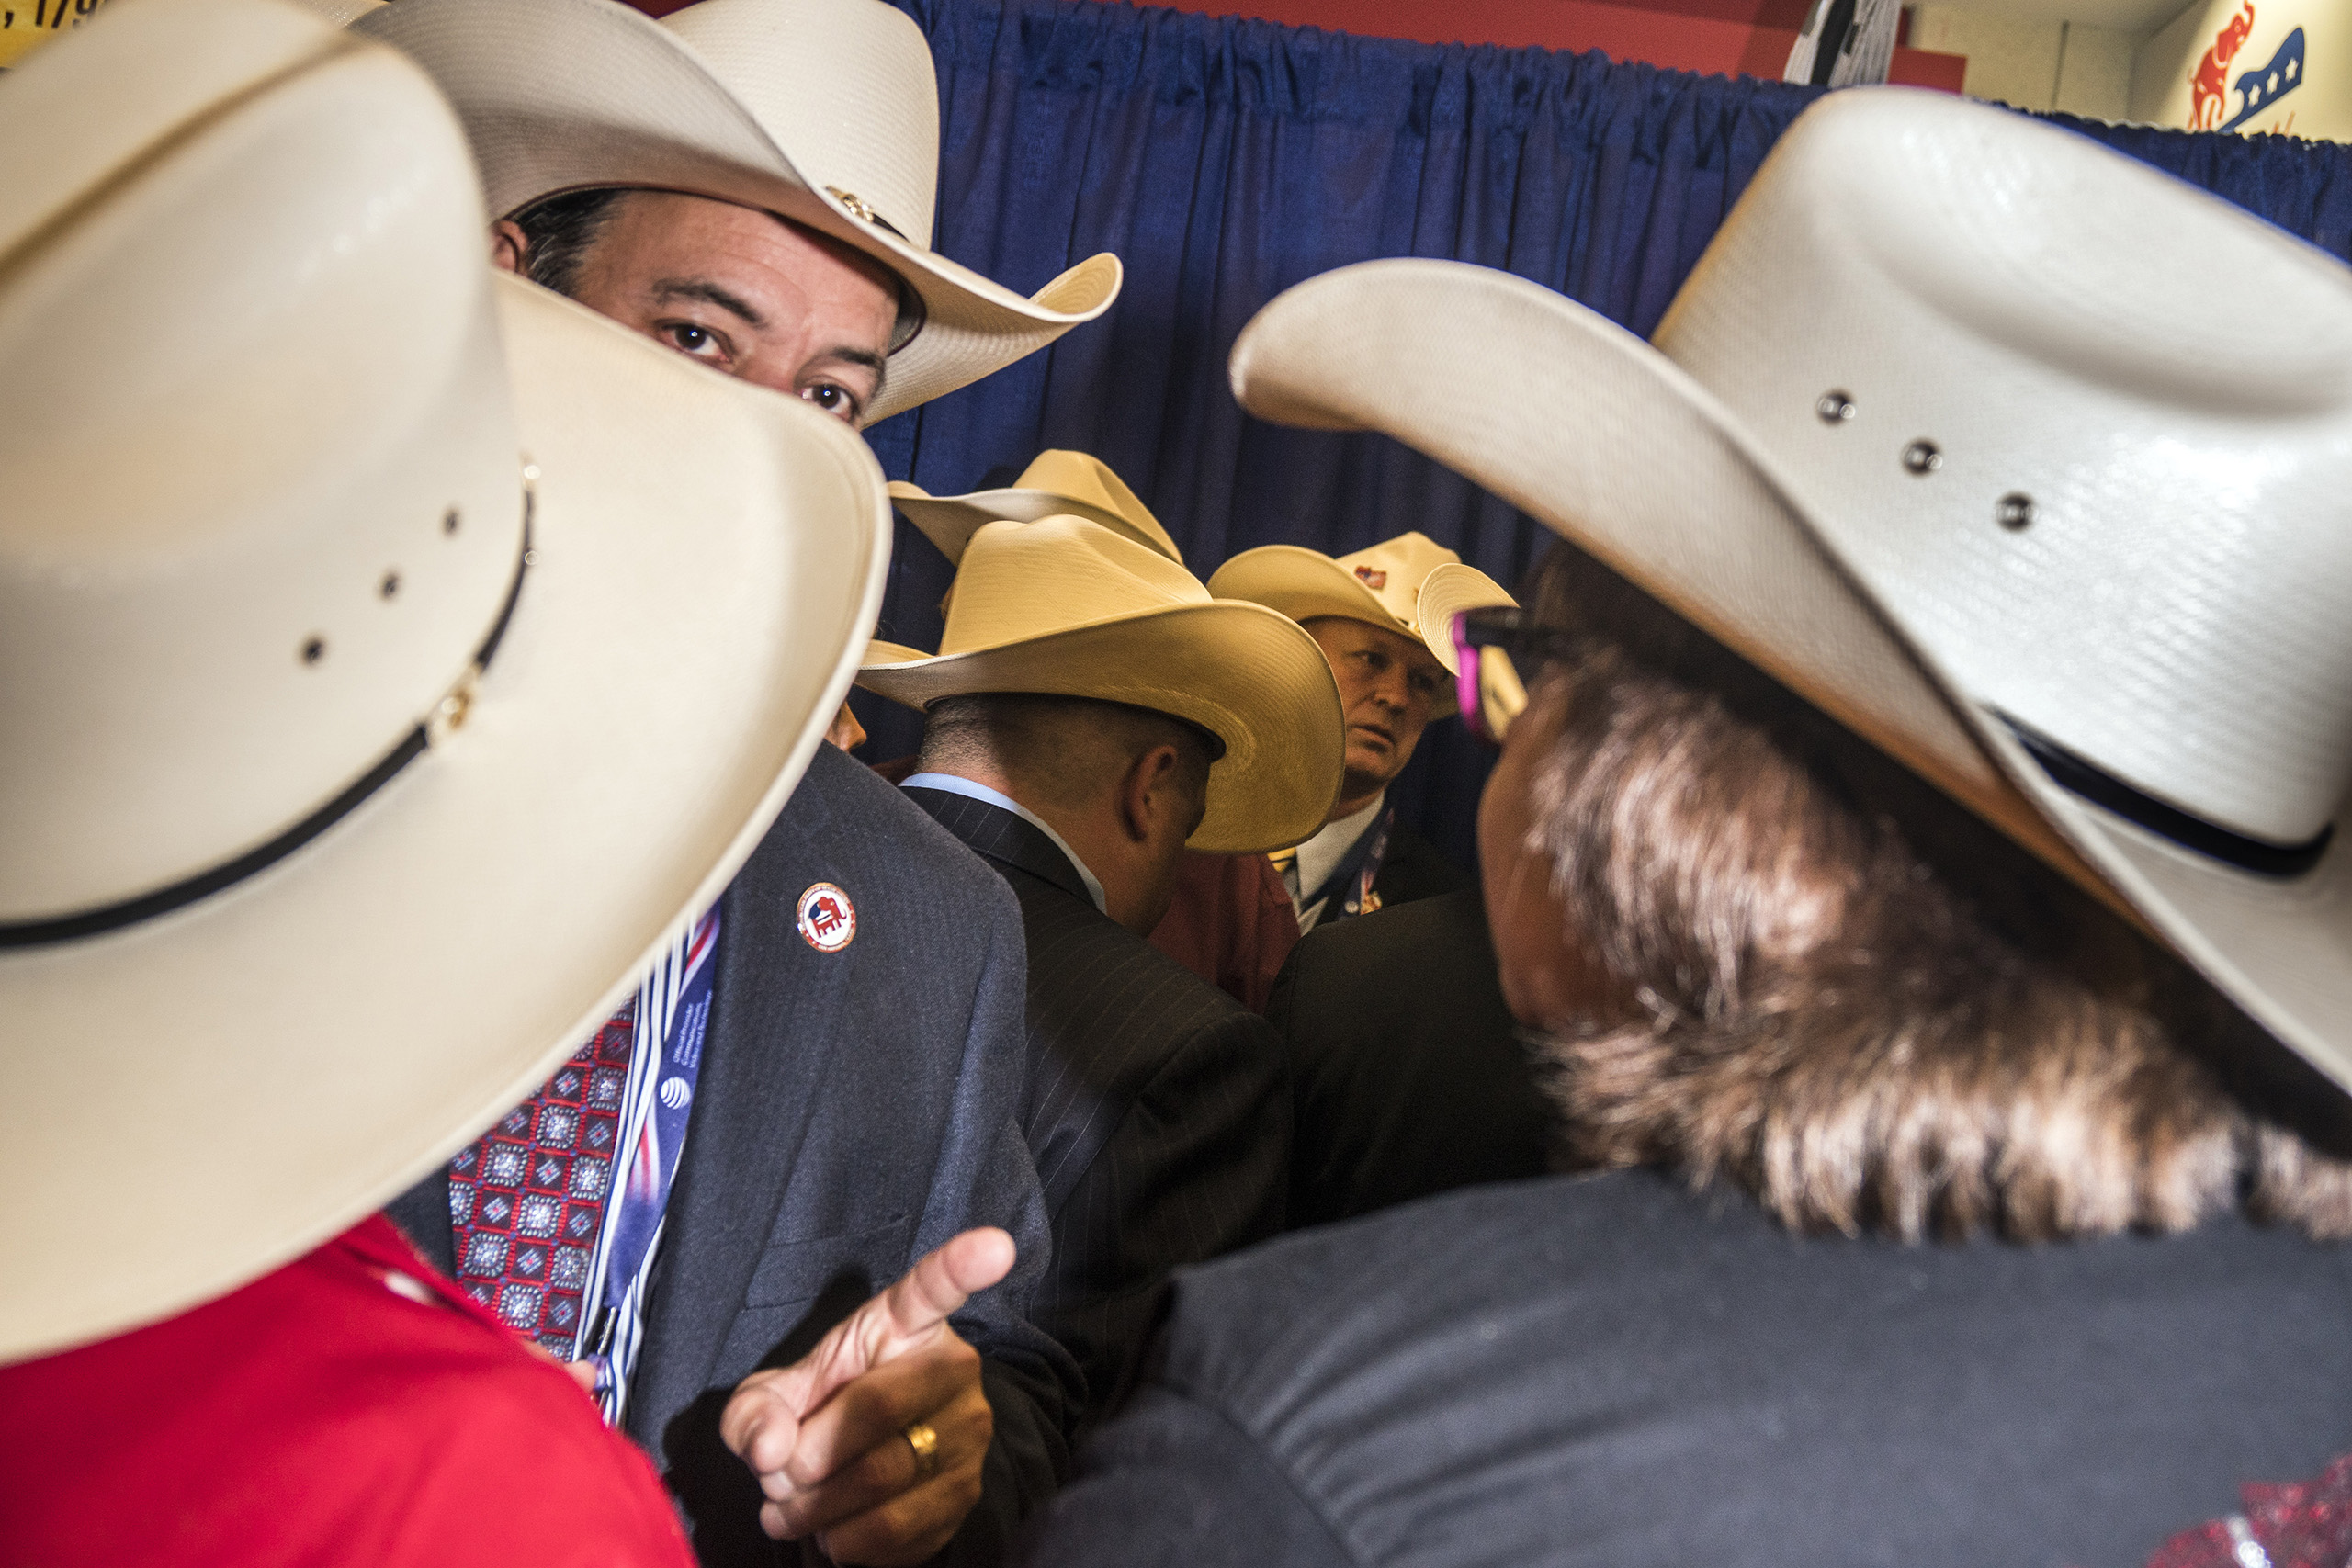 Texas delegates on the fourth day of the Republican National Convention on July 21, 2016 at the Quicken Loans Arena in Cleveland, Ohio.